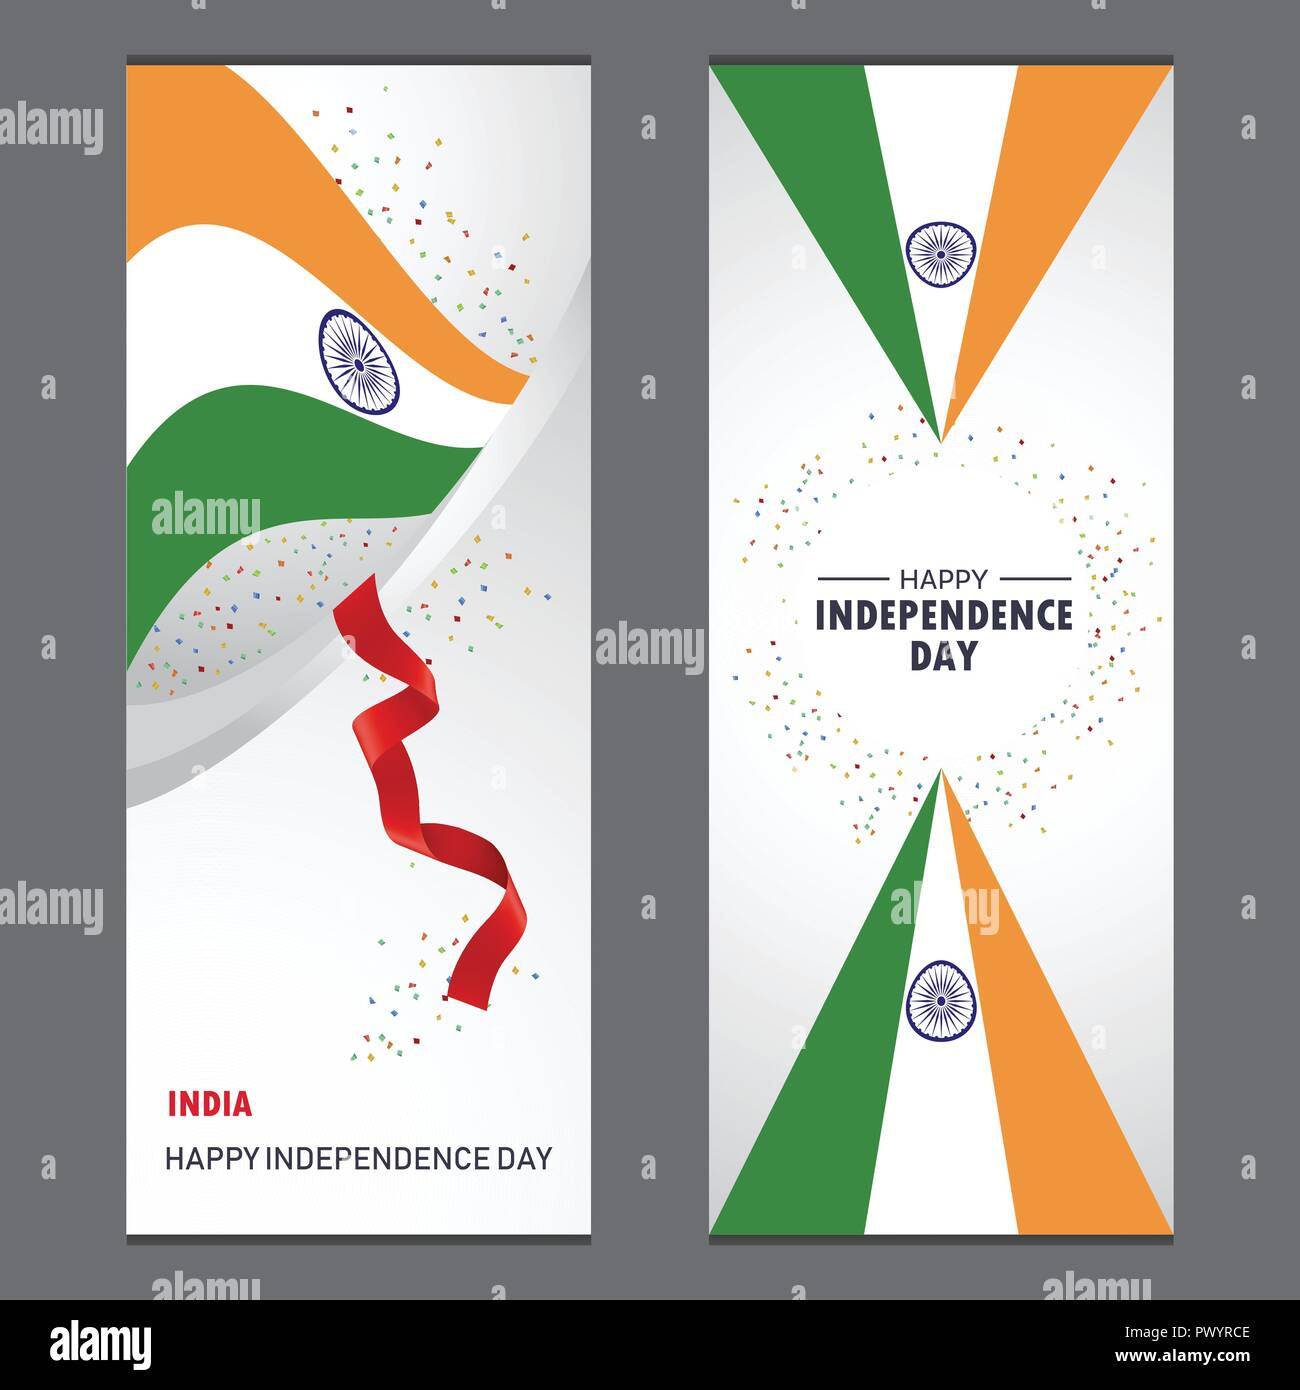 Happy Independence Banners Dynamic Website Banners